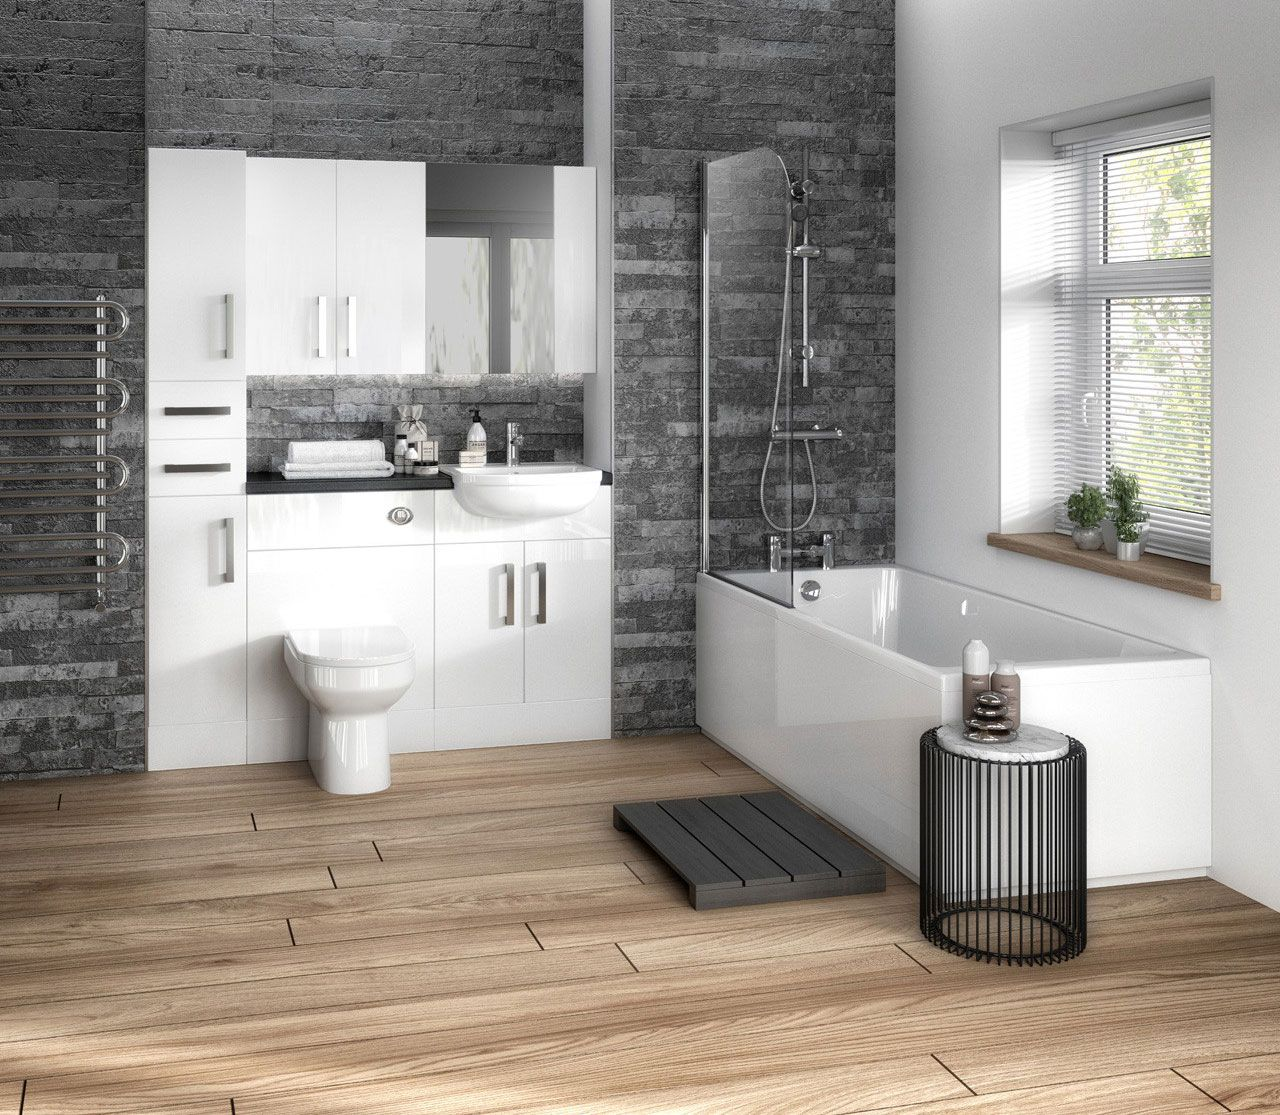 Stylish White Bathroom Furniture Is Perfect For Creating A Modern Bathroom Design Combine Bathroom Furniture Modern Modern Bathroom Design Bathroom Furniture